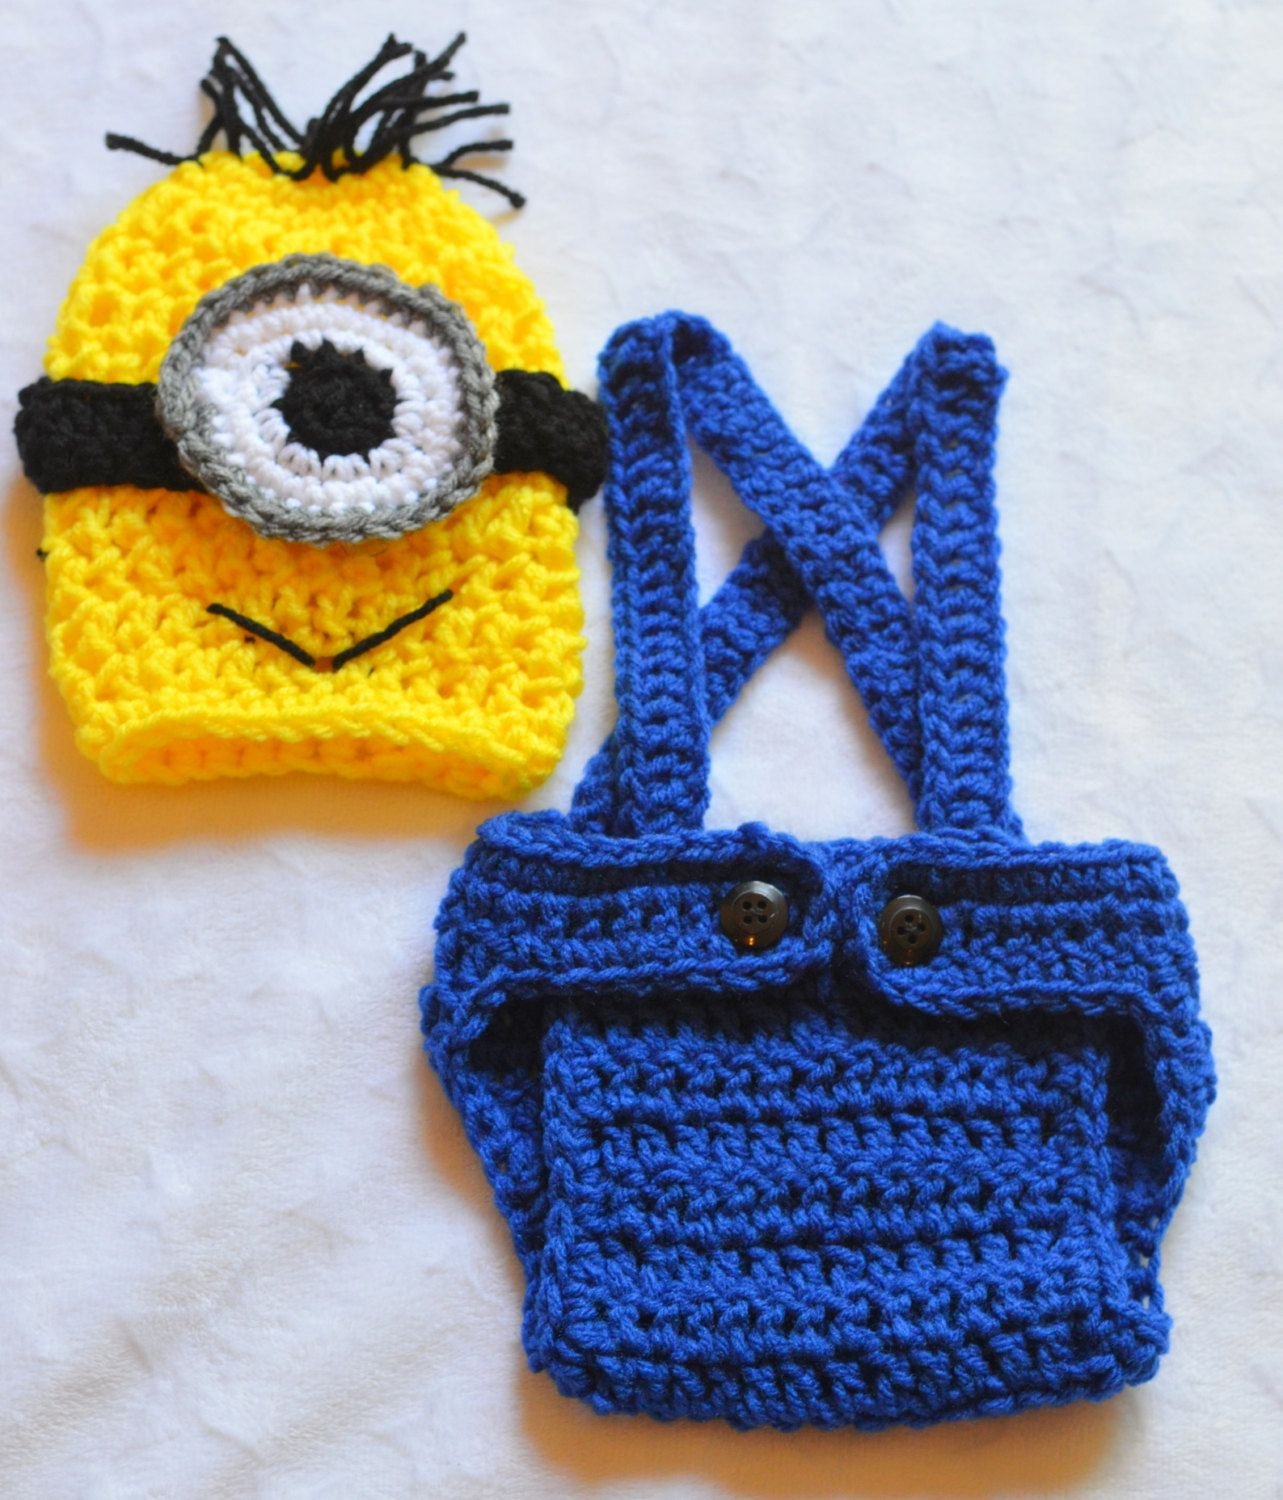 Baby Boy Crochet Despicable Me Outfit Newborn by ChildishDreams